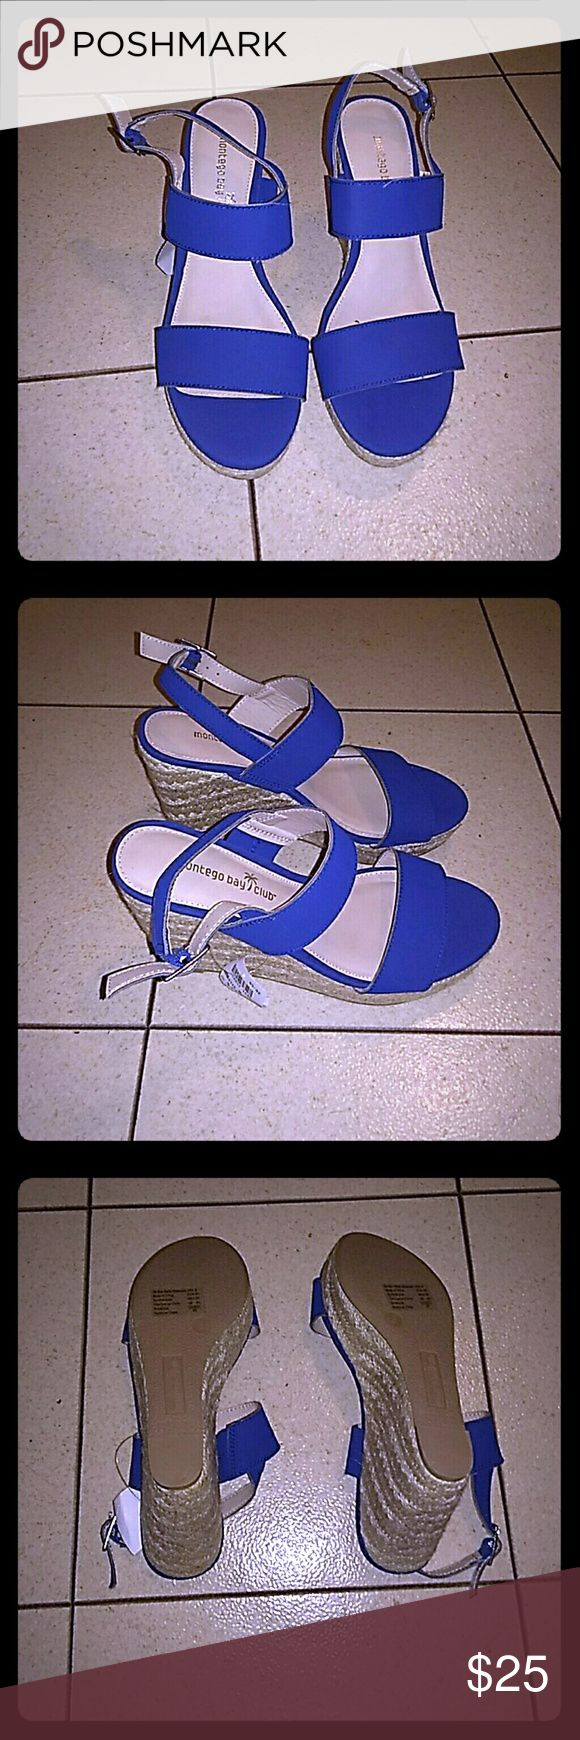 Montego Bay Royal Blue Wedges Brand New... Never Worn without box. They're royal blue front toe and ankle strap with a basket weave material wedge. Very cute with price tag still attached. Montego Bay Club Shoes Wedges